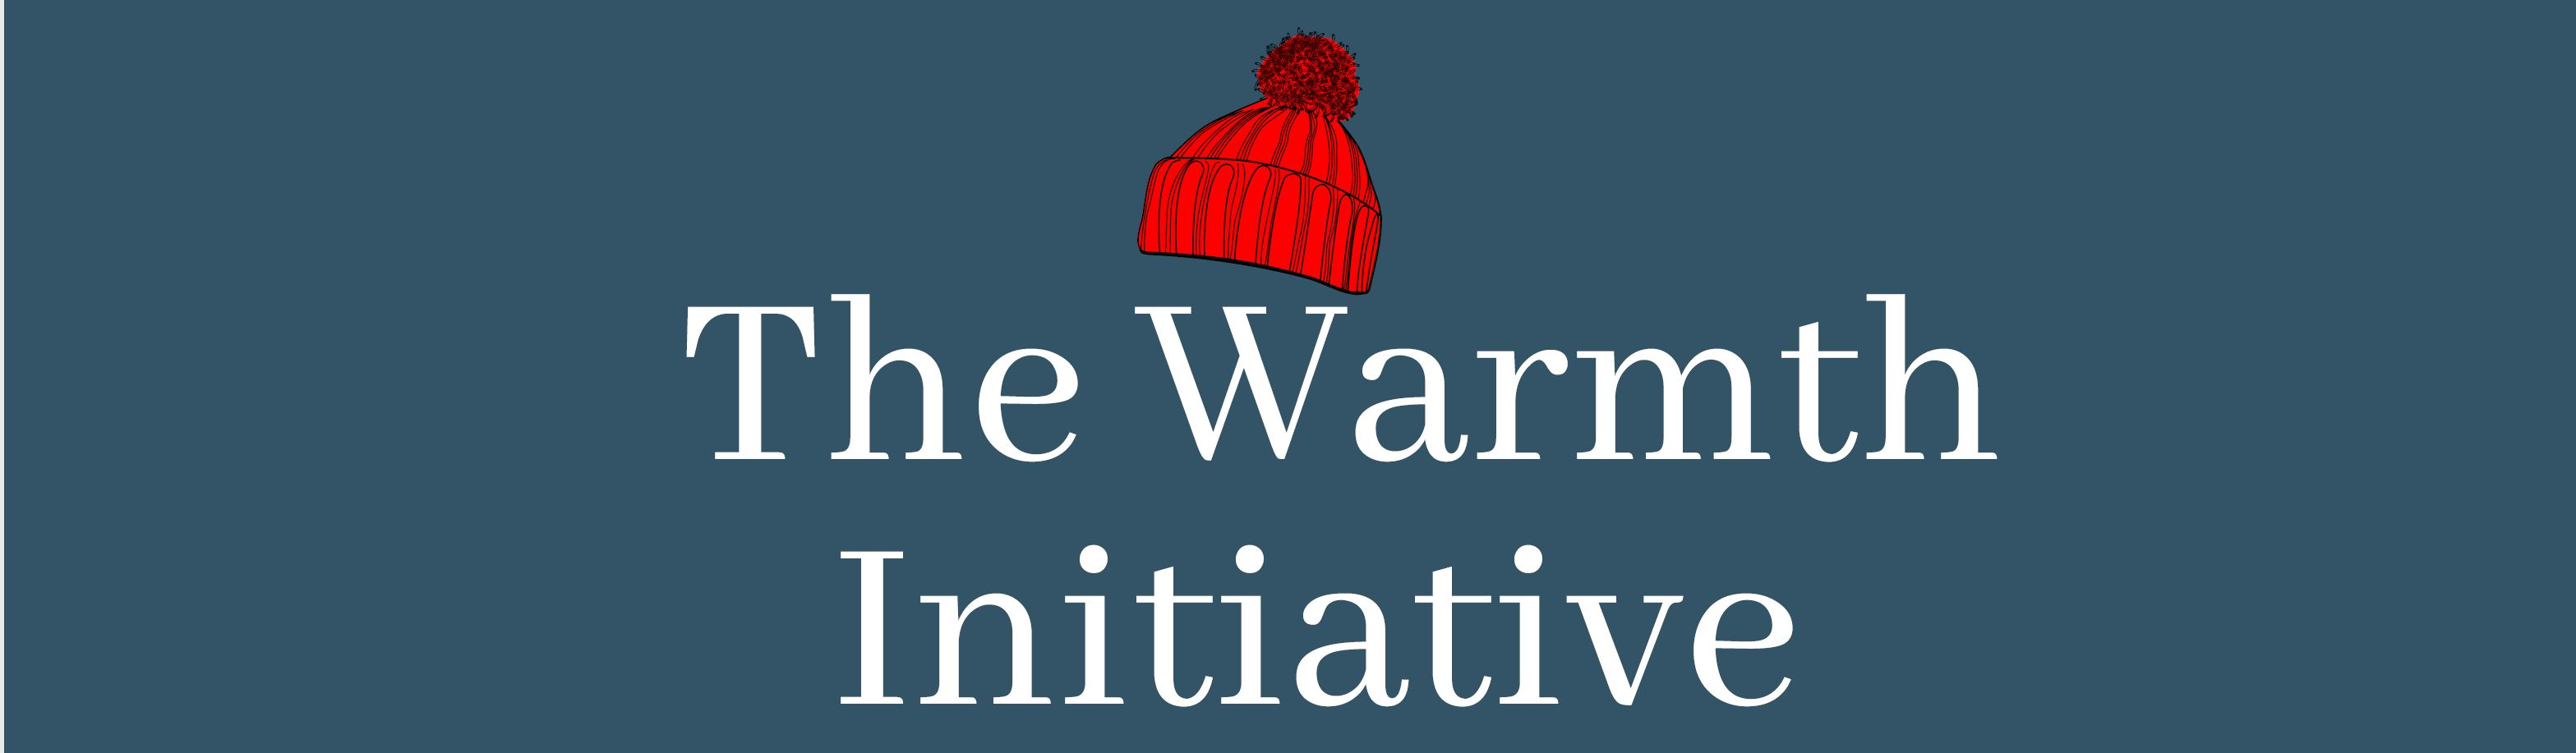 The Warmth Initiative